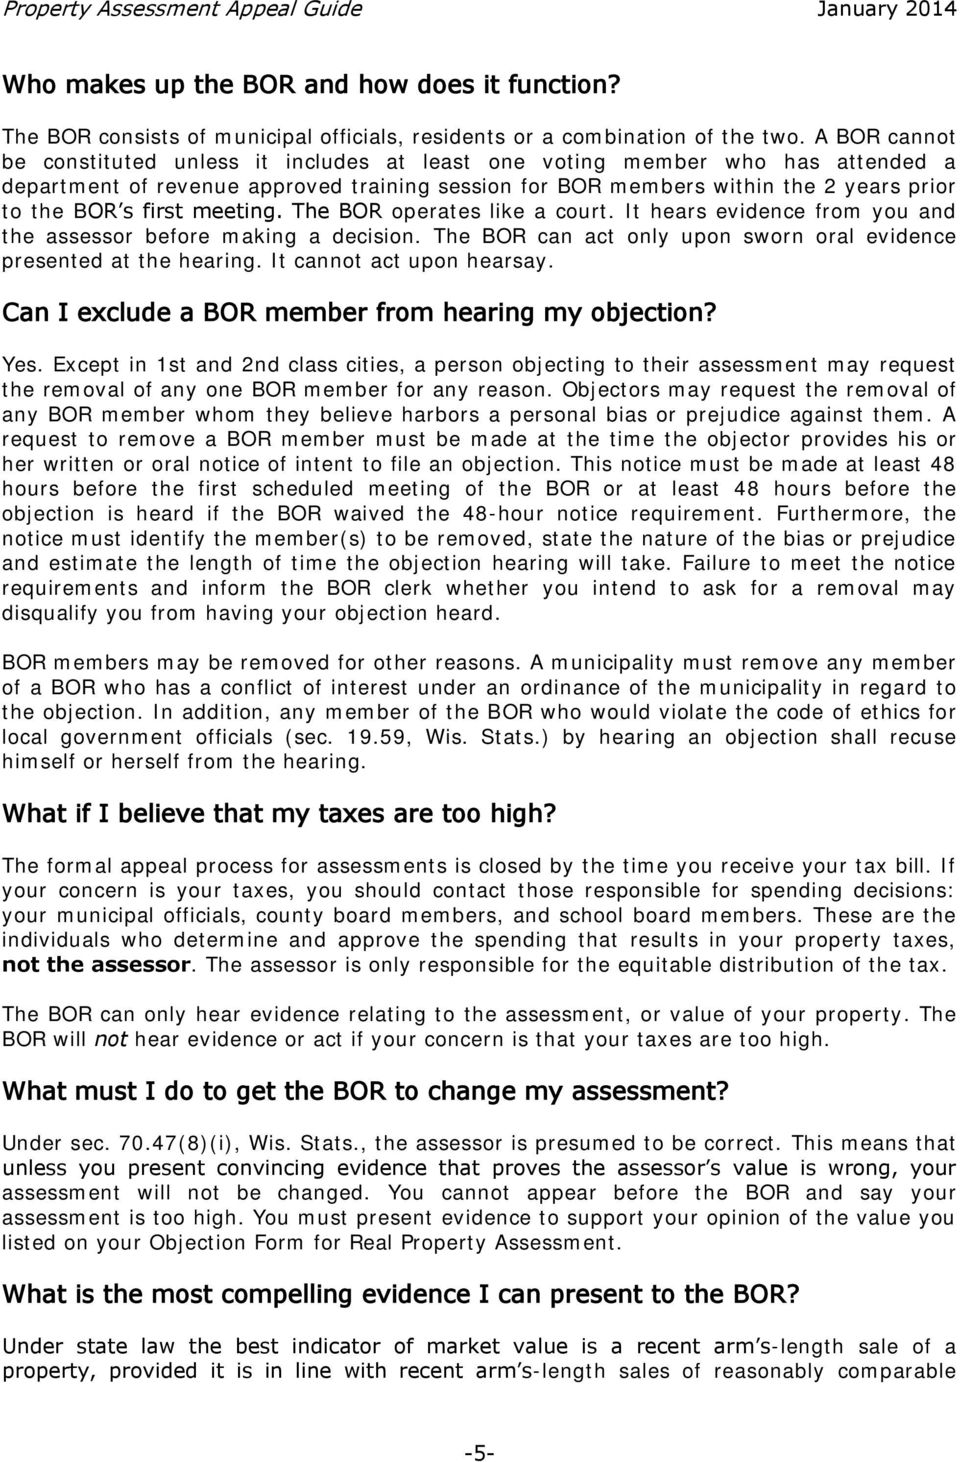 first meeting. The BOR operates like a court. It hears evidence from you and the assessor before making a decision. The BOR can act only upon sworn oral evidence presented at the hearing.